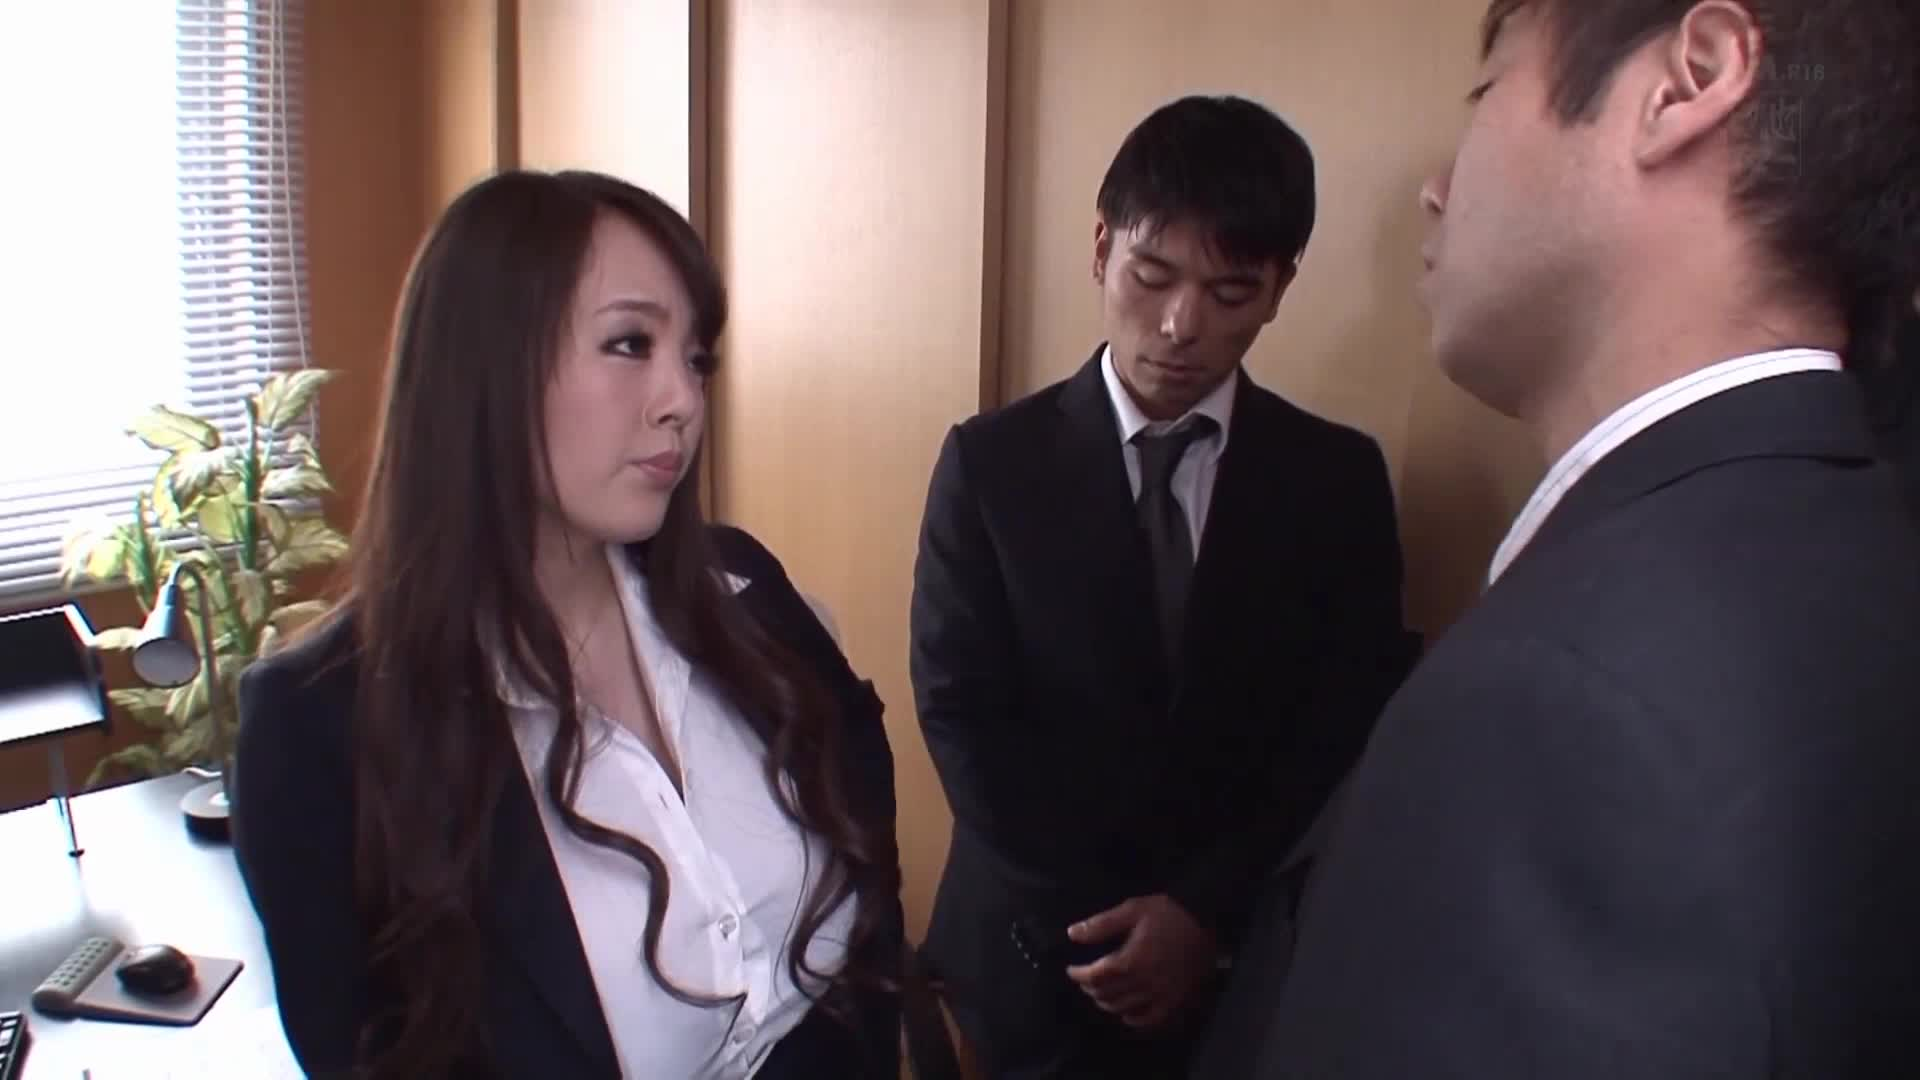 Hitomi | Busty Female Boss with Huge Tits